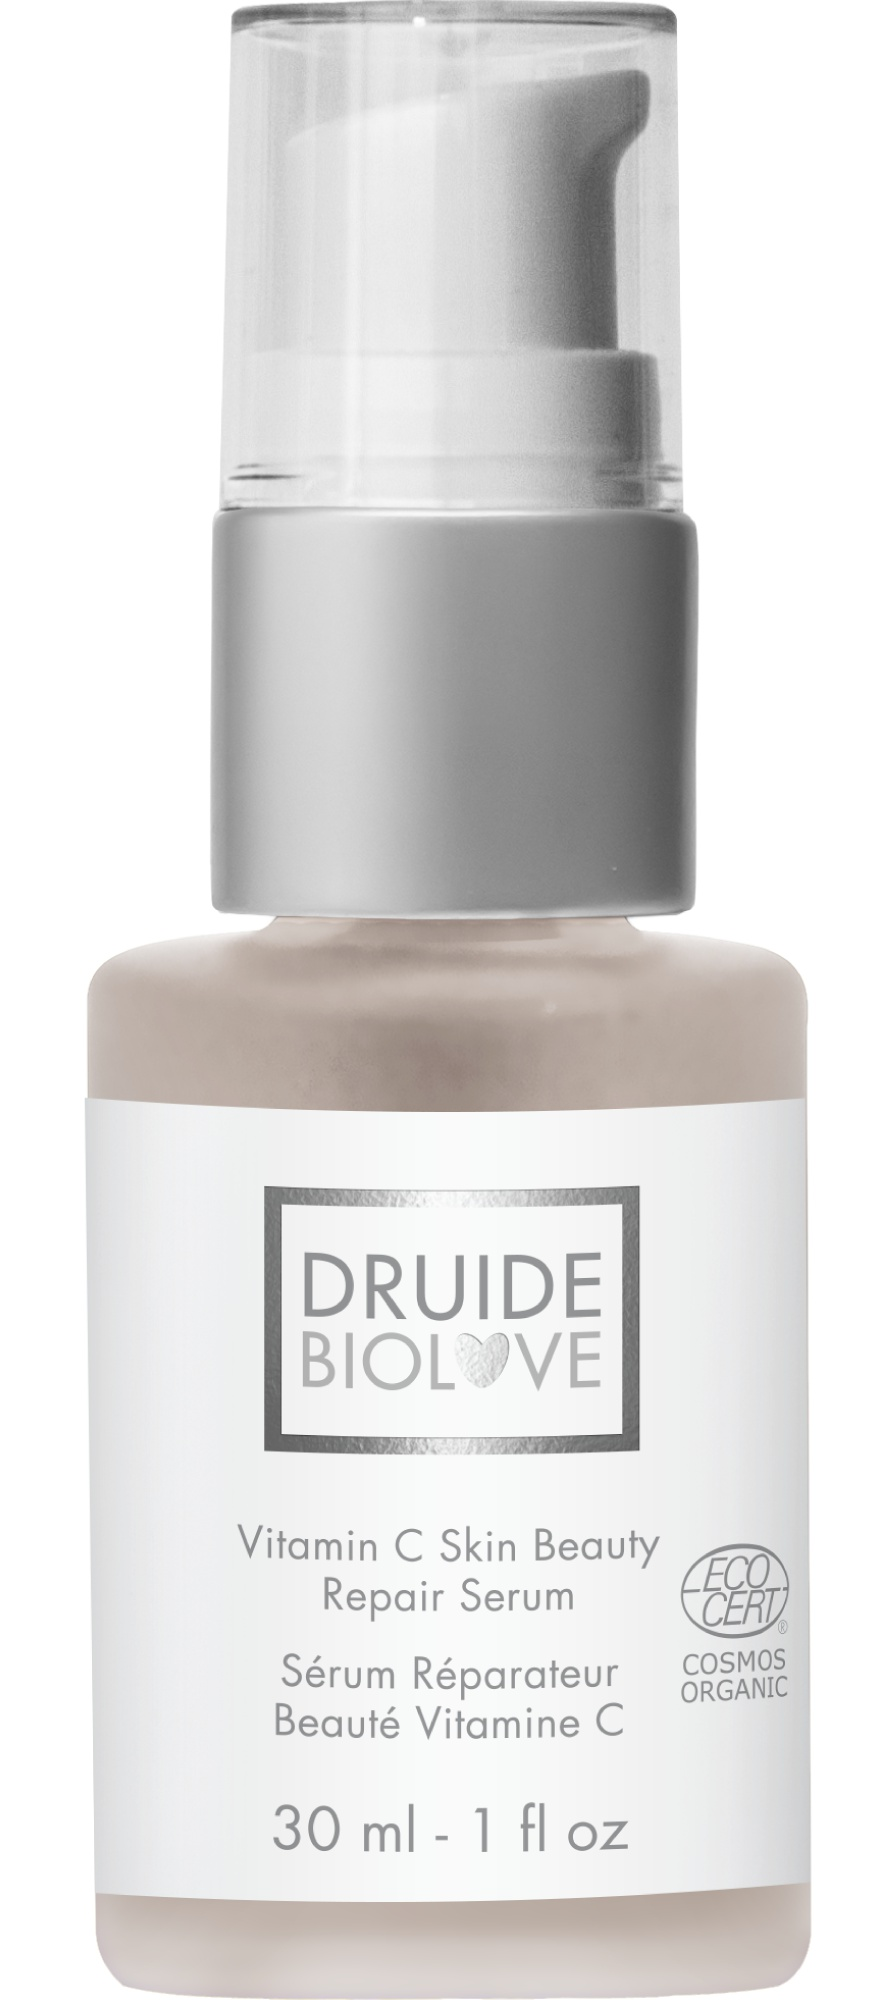 Druide Vitamin C Skin Beauty Repair Serum